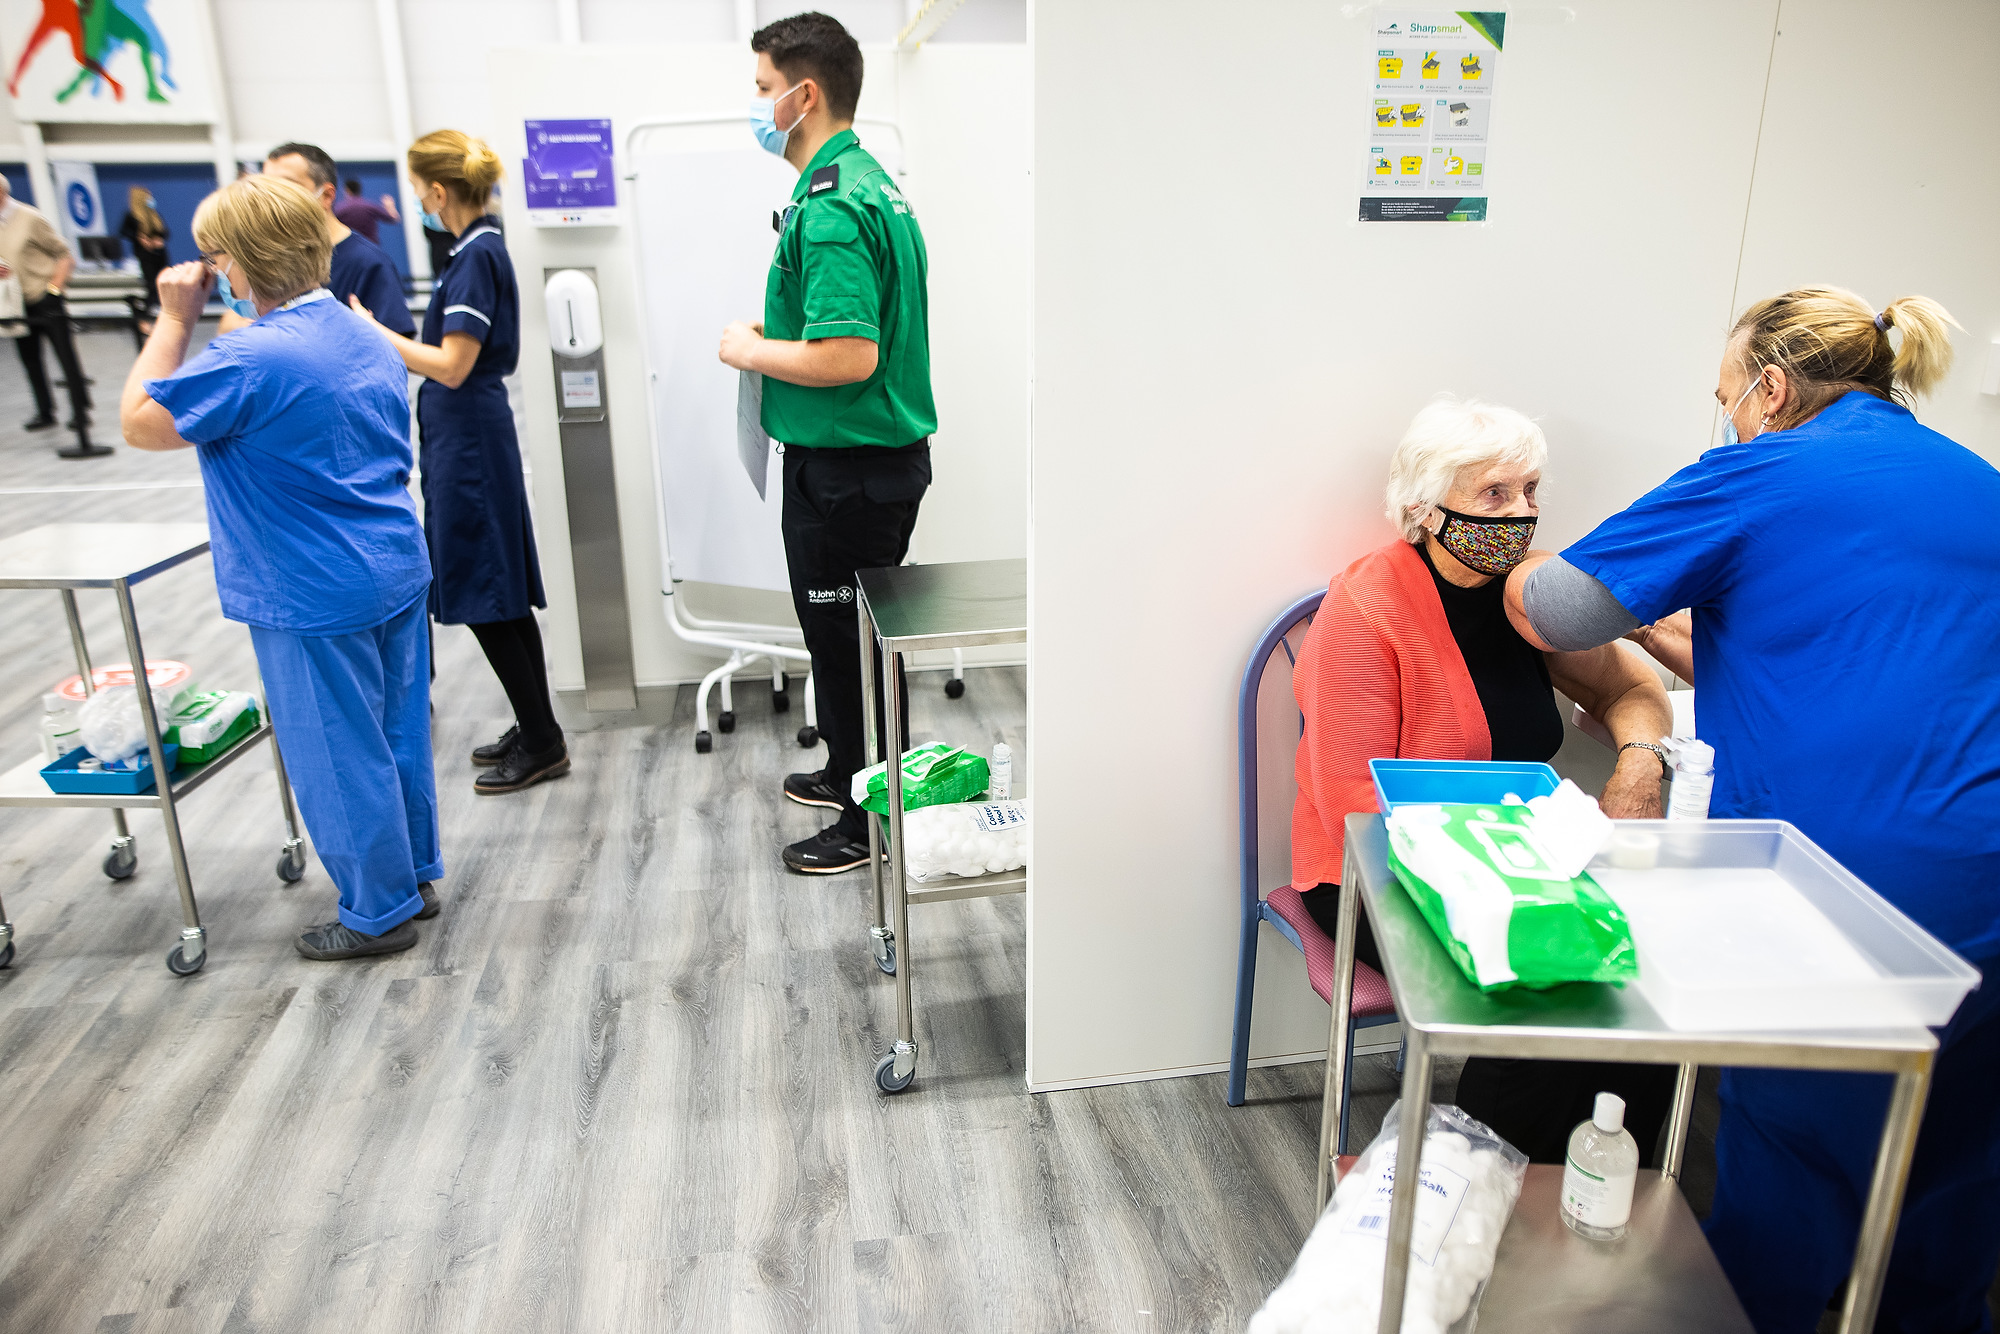 Vaccination taking place at the Etihad Campus site